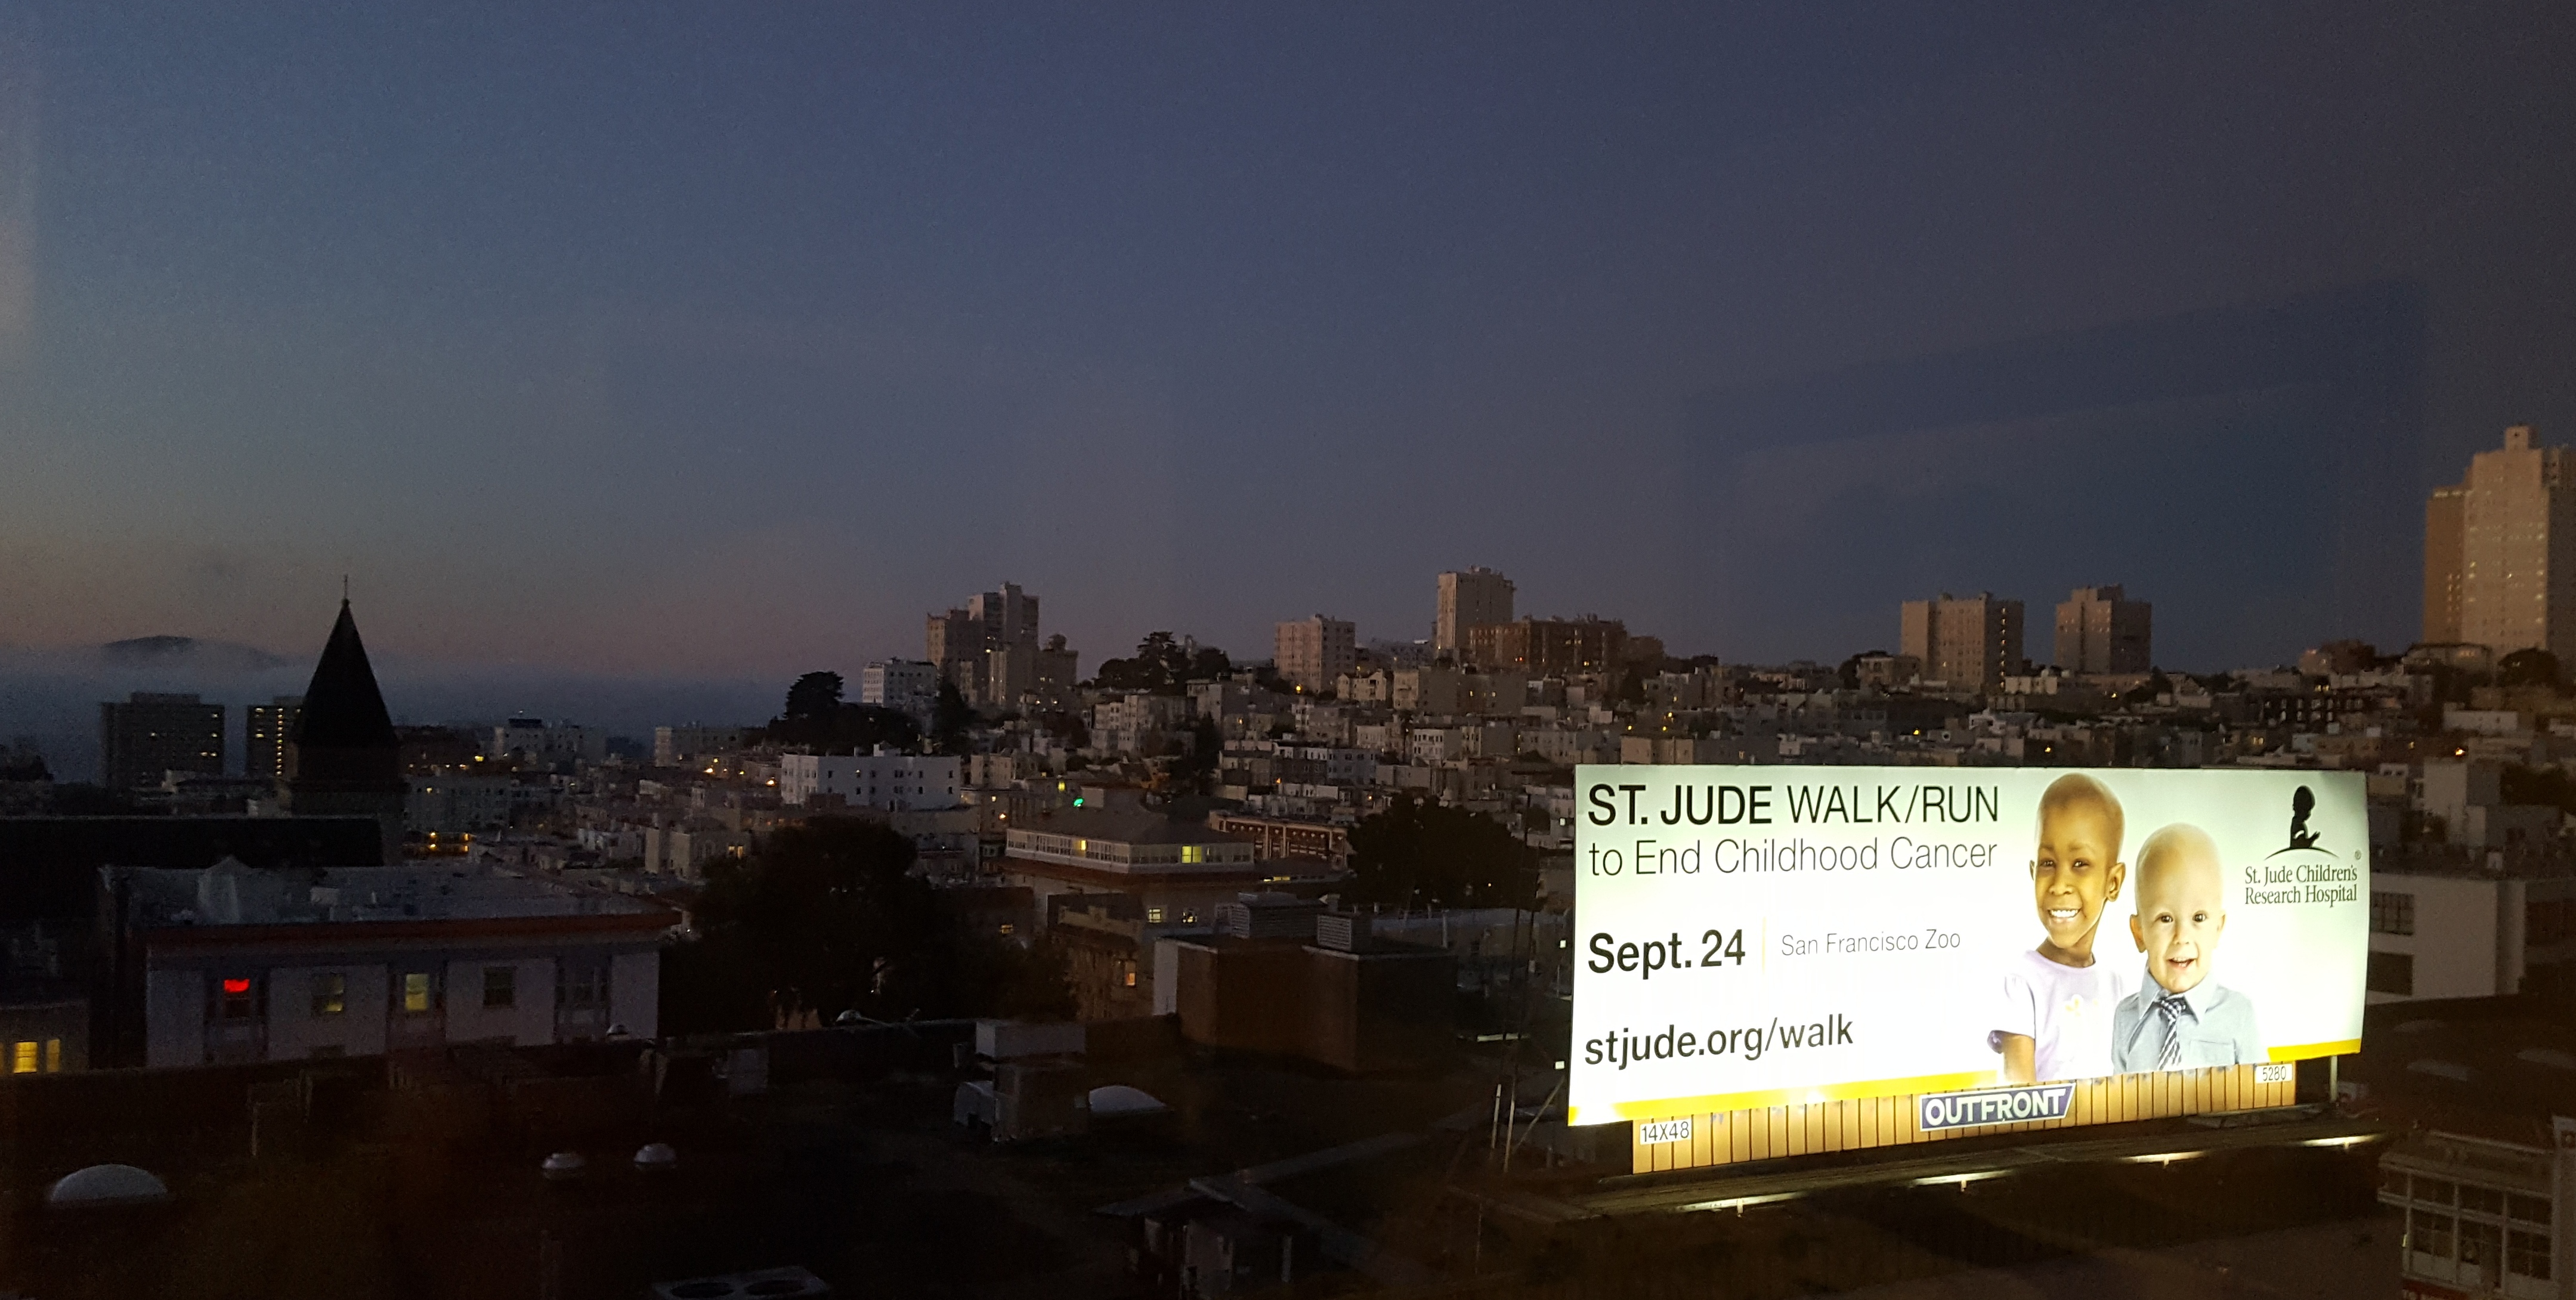 St. Jude's walk to end childhood cancer, SF